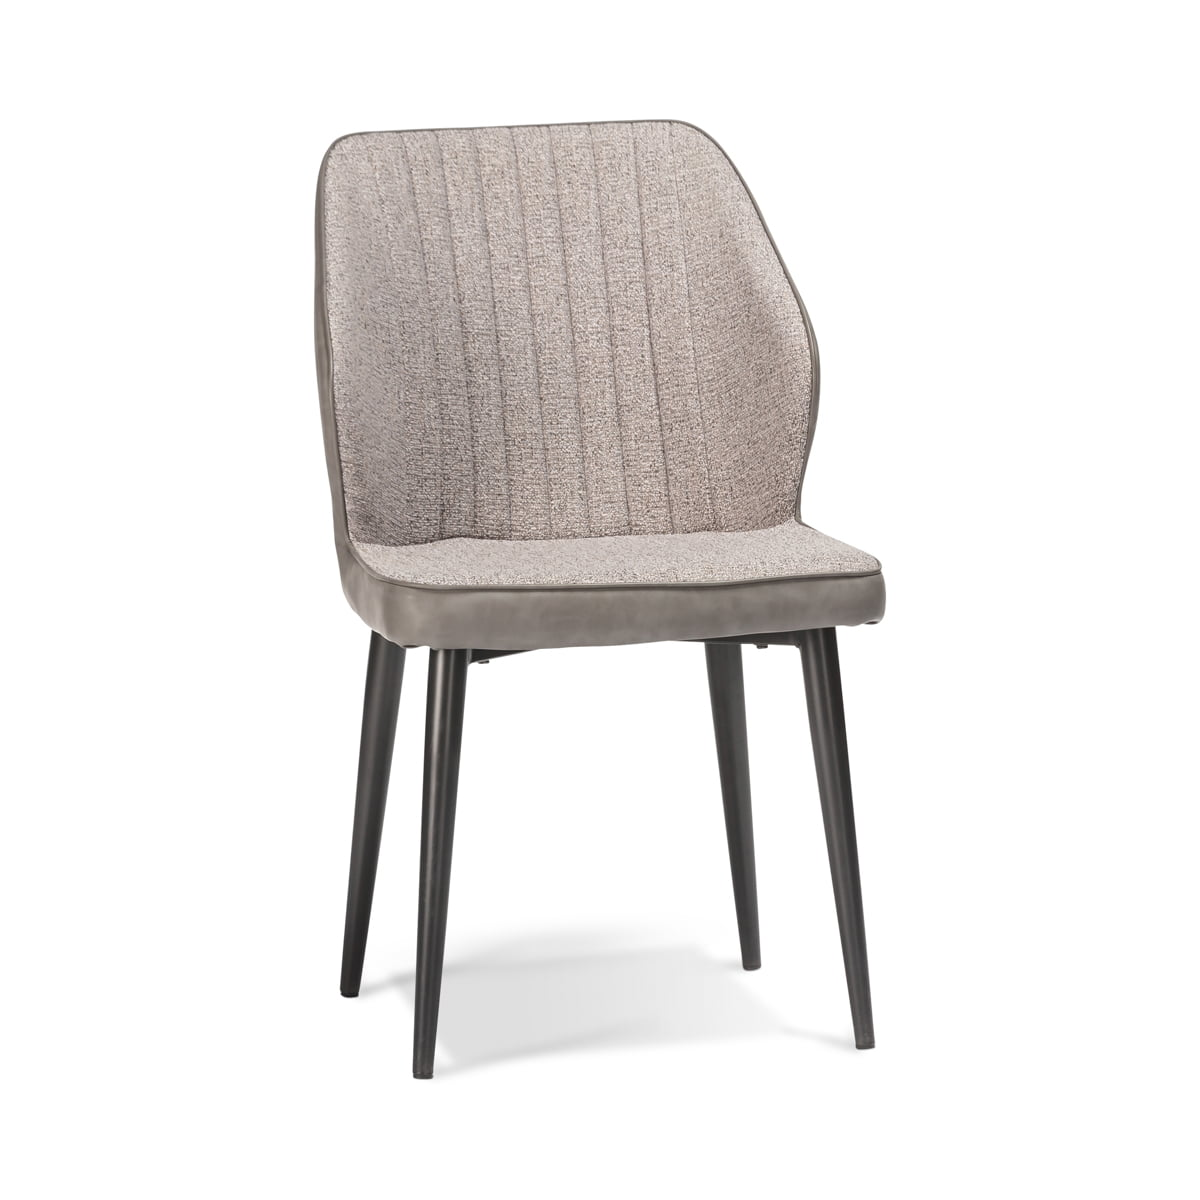 Brentwood Two-Tone Grey Dining Chair